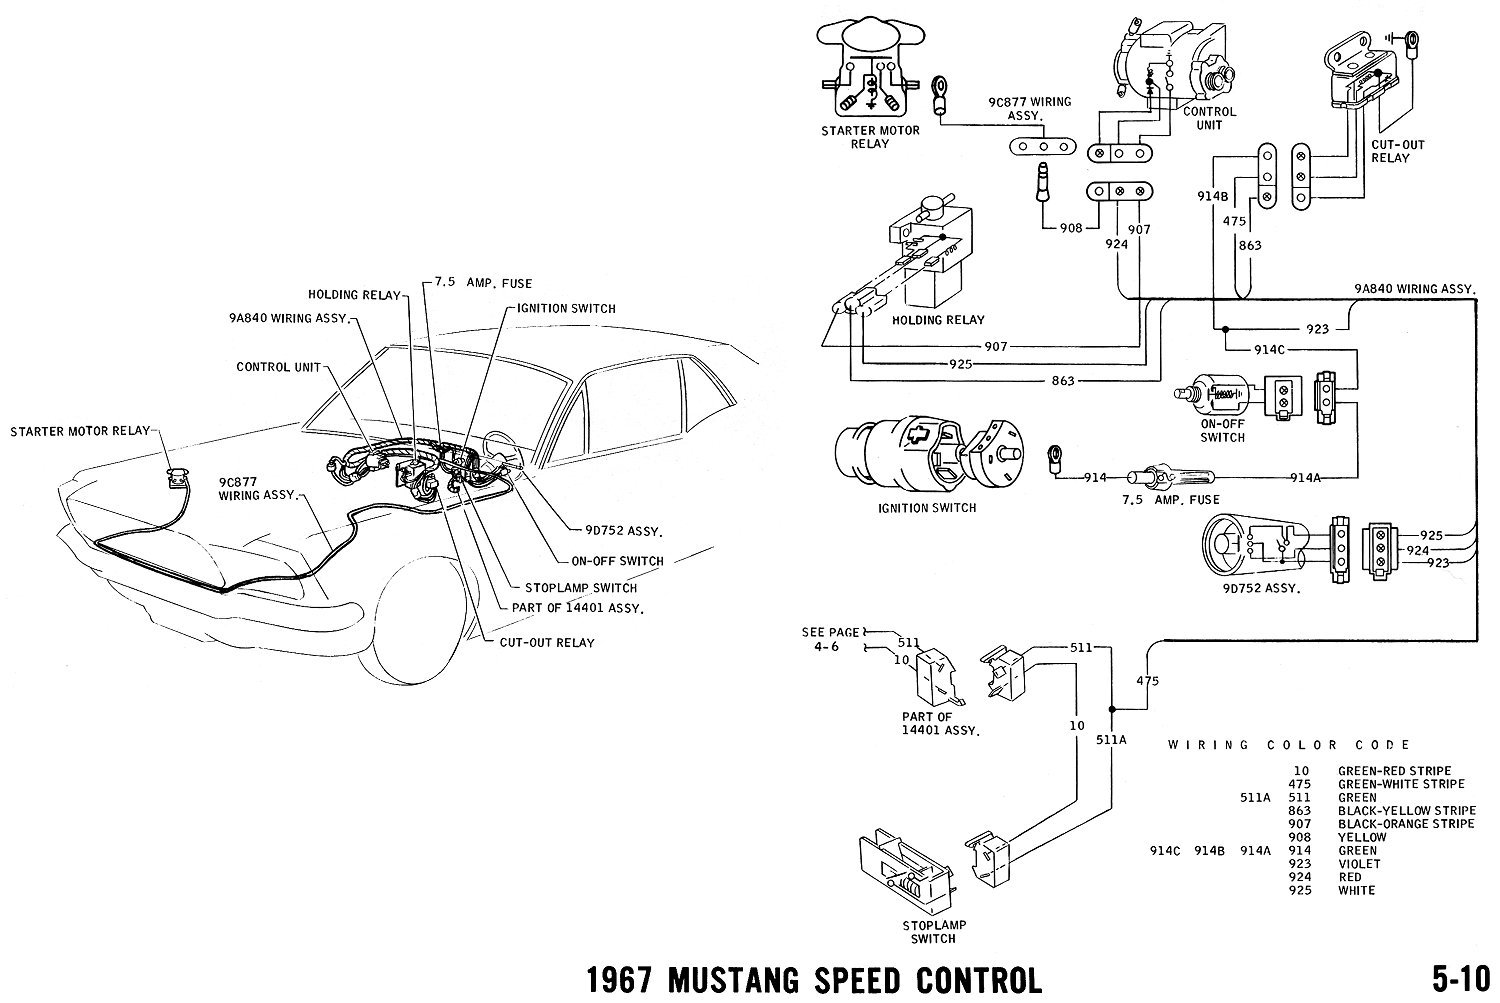 67speed 1967 mustang wiring and vacuum diagrams average joe restoration best wiring harness for 1967 mustang at soozxer.org